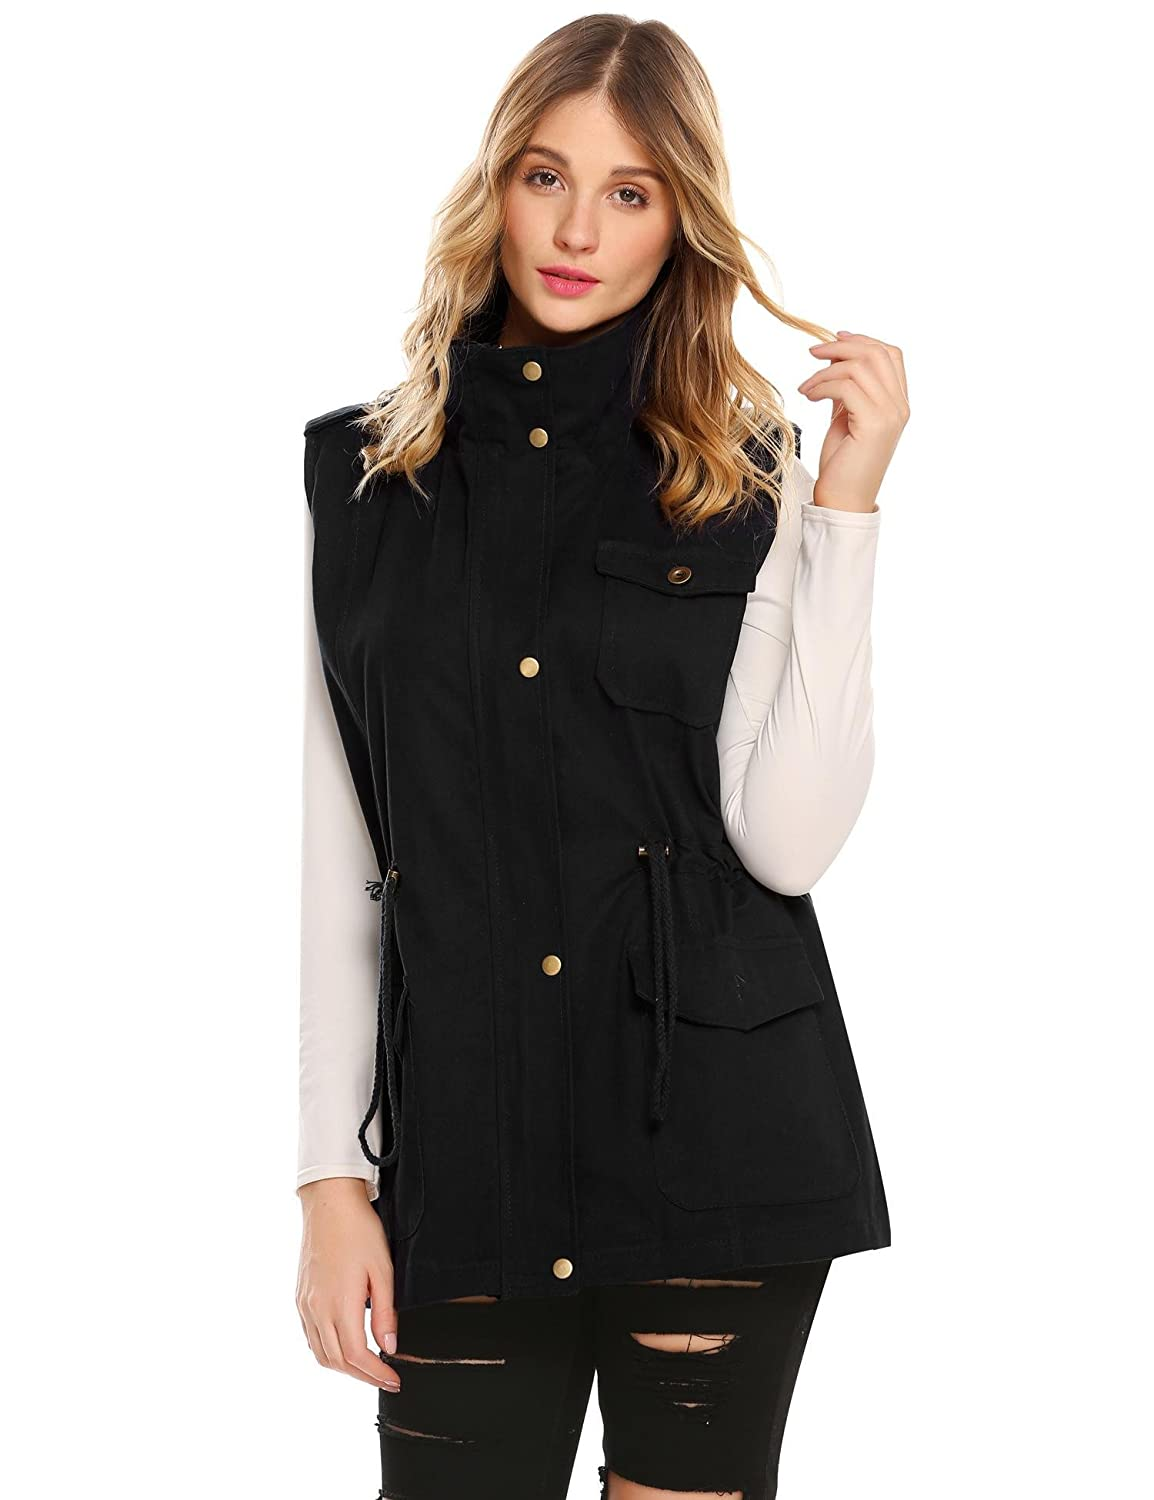 54b7a2ac5251d5 Top 10 wholesale Utility Jacket Vest - Chinabrands.com